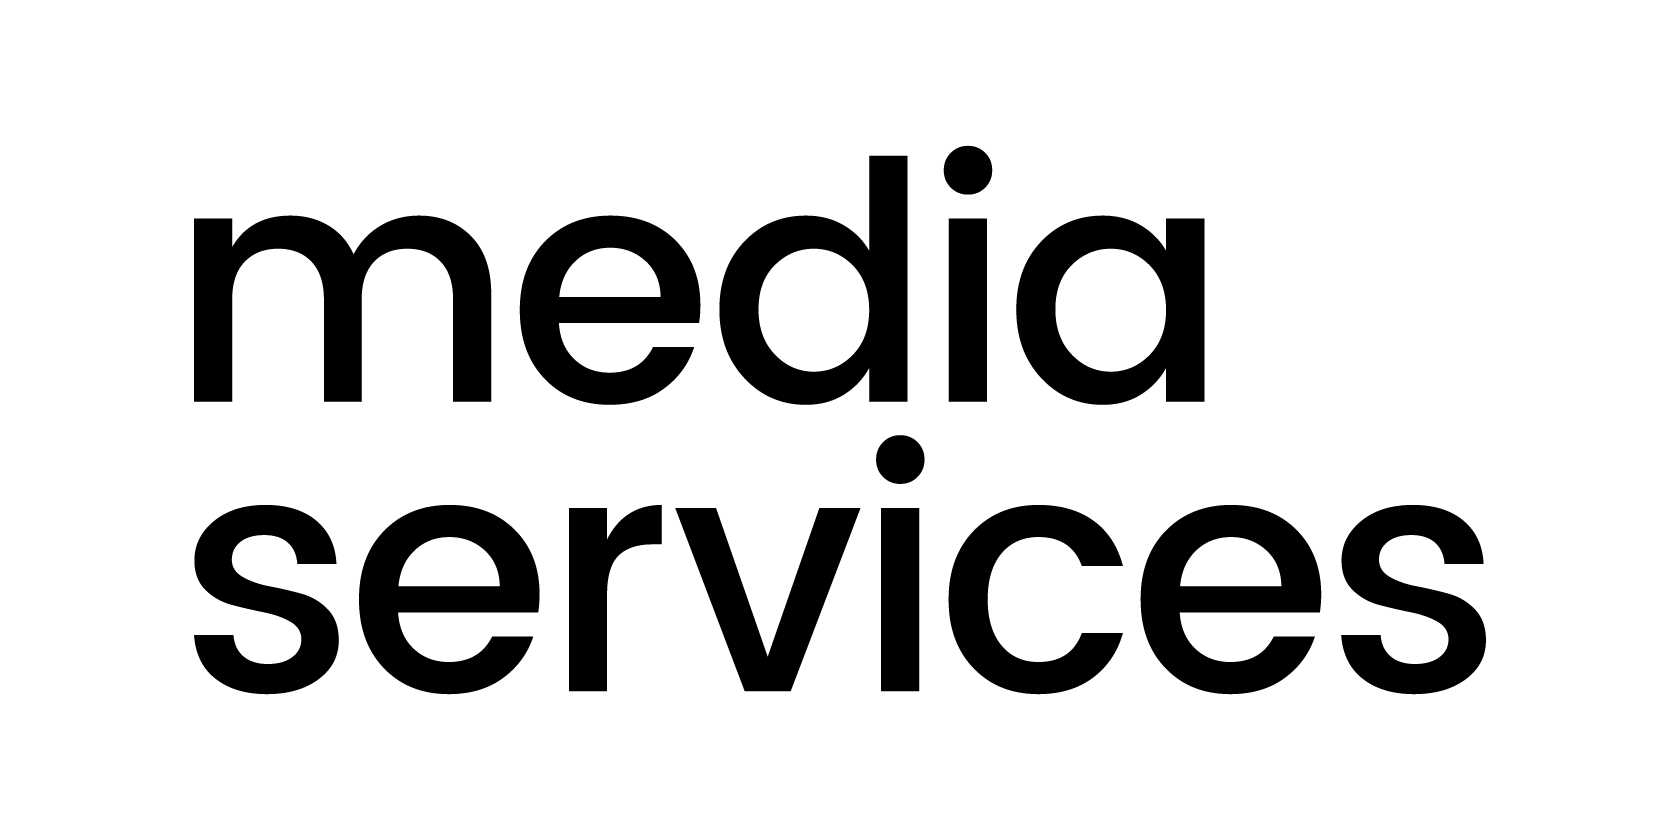 One of many entertainment payroll services in Los Angeles, Media Services boasts incredible 24/7 customer service.